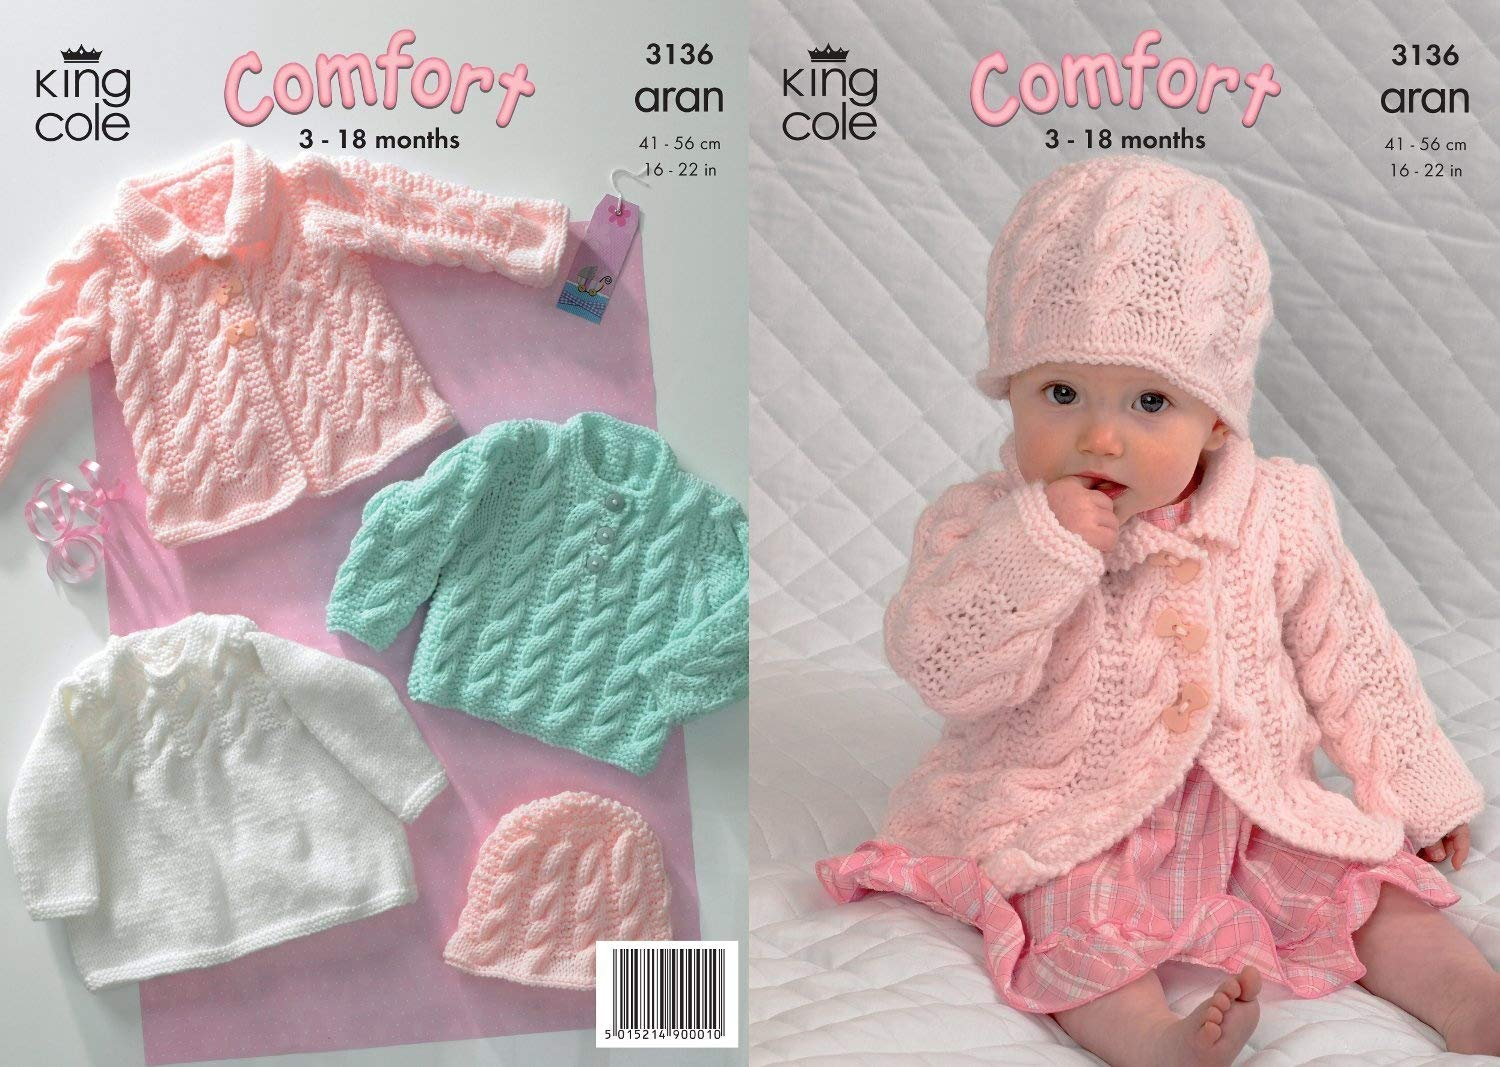 King Cole Comfort Aran Knitting Pattern Babies Knitted Coat Dress Sweater & Hat 3136